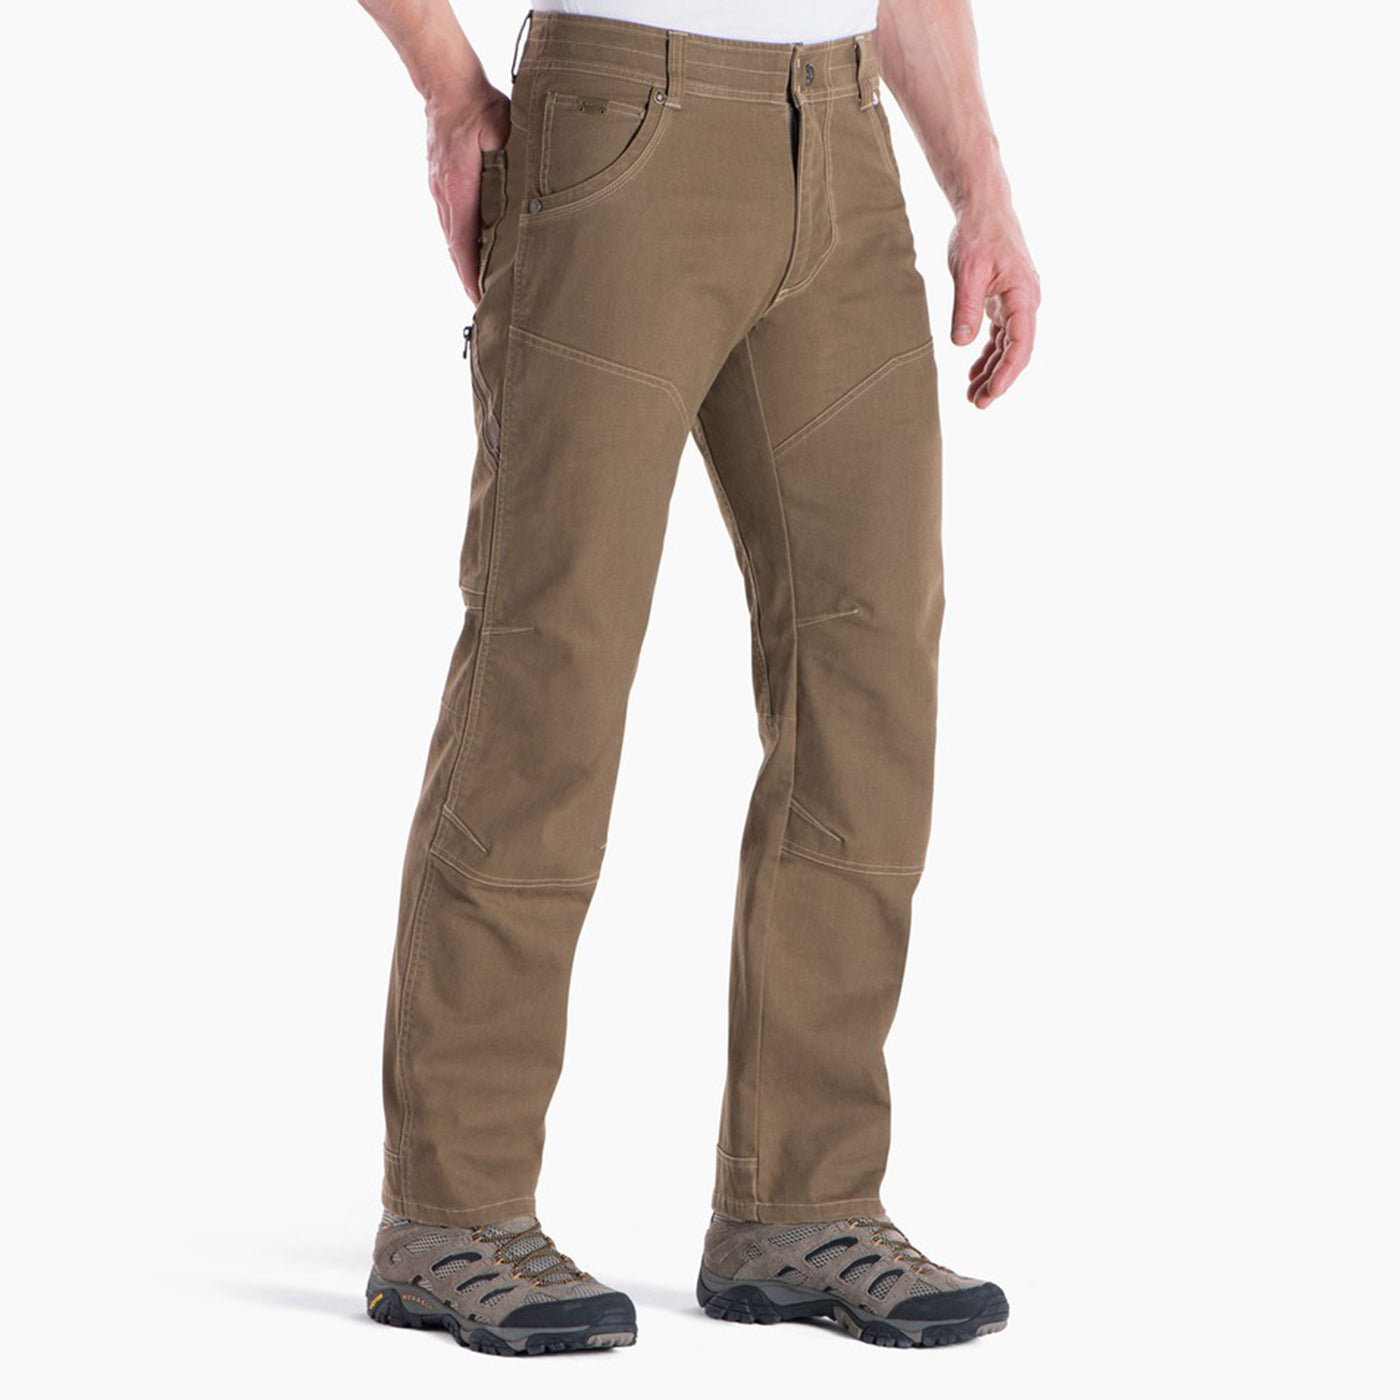 kuhl the law pants mens on model front view in color light brown khaki